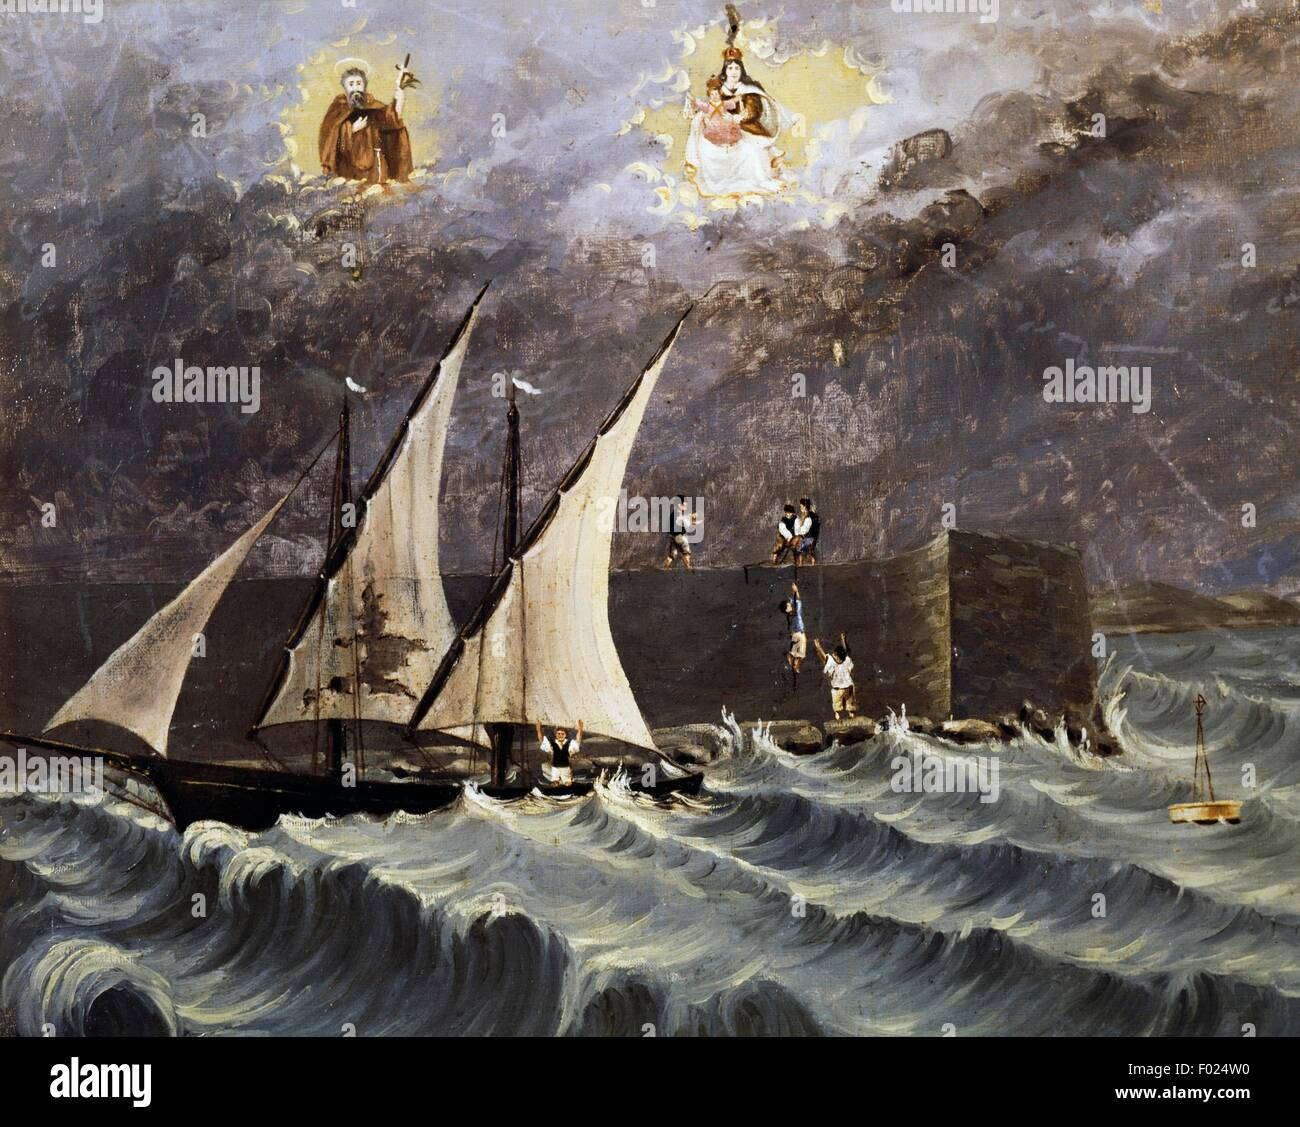 Sailing ship on a stormy sea, seafaring ex voto, Italy, 19th century. Stock Photo